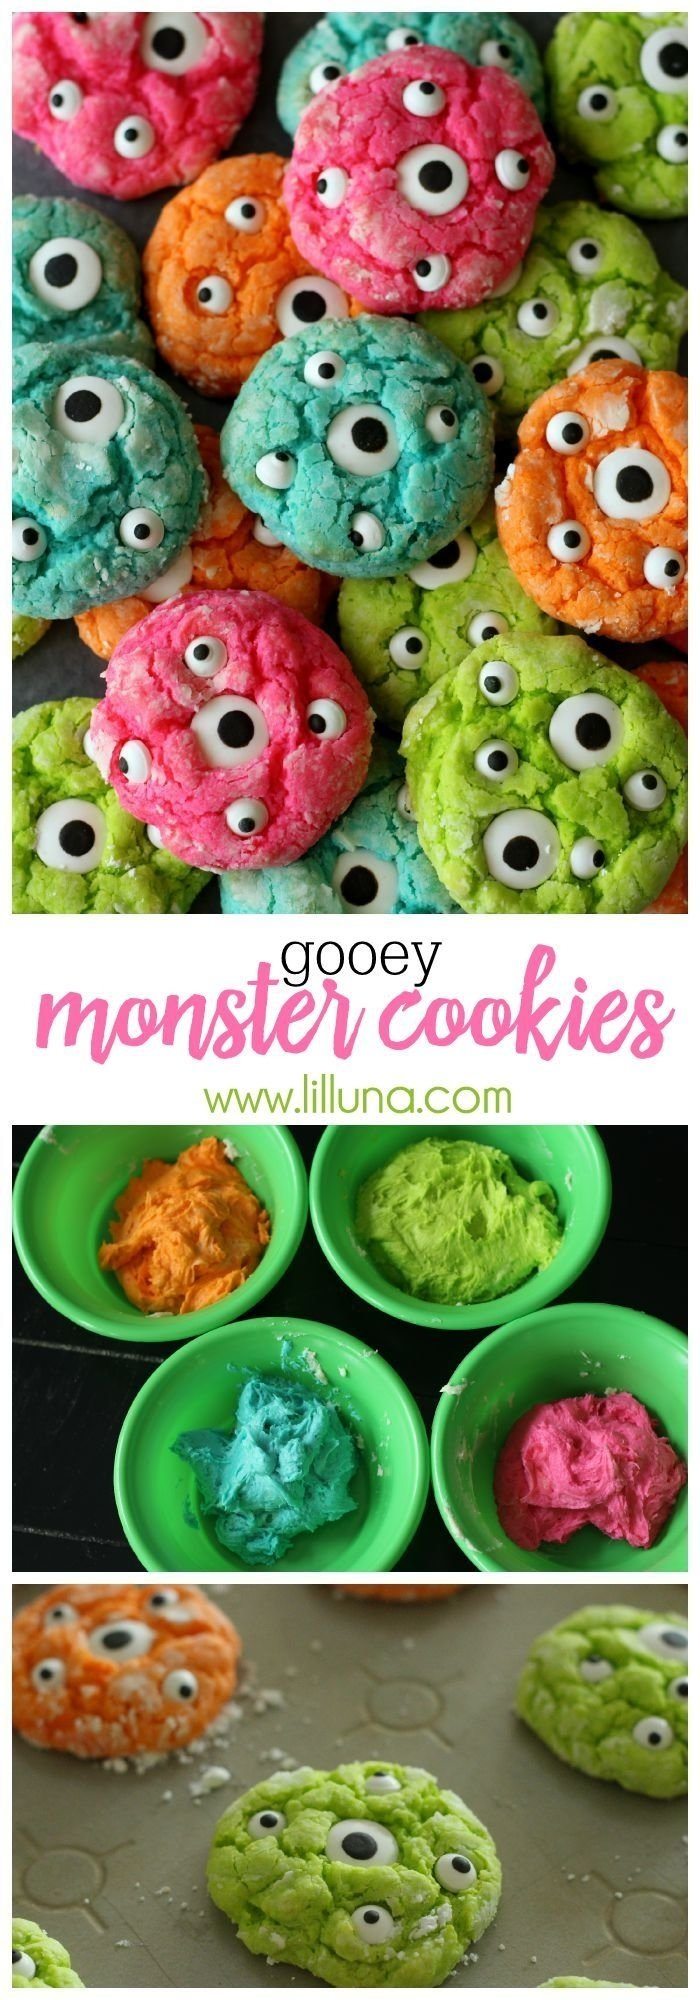 10 Awesome Halloween Baking Ideas For Kids 356 best spooky eats haunted treats images on pinterest halloween 2020